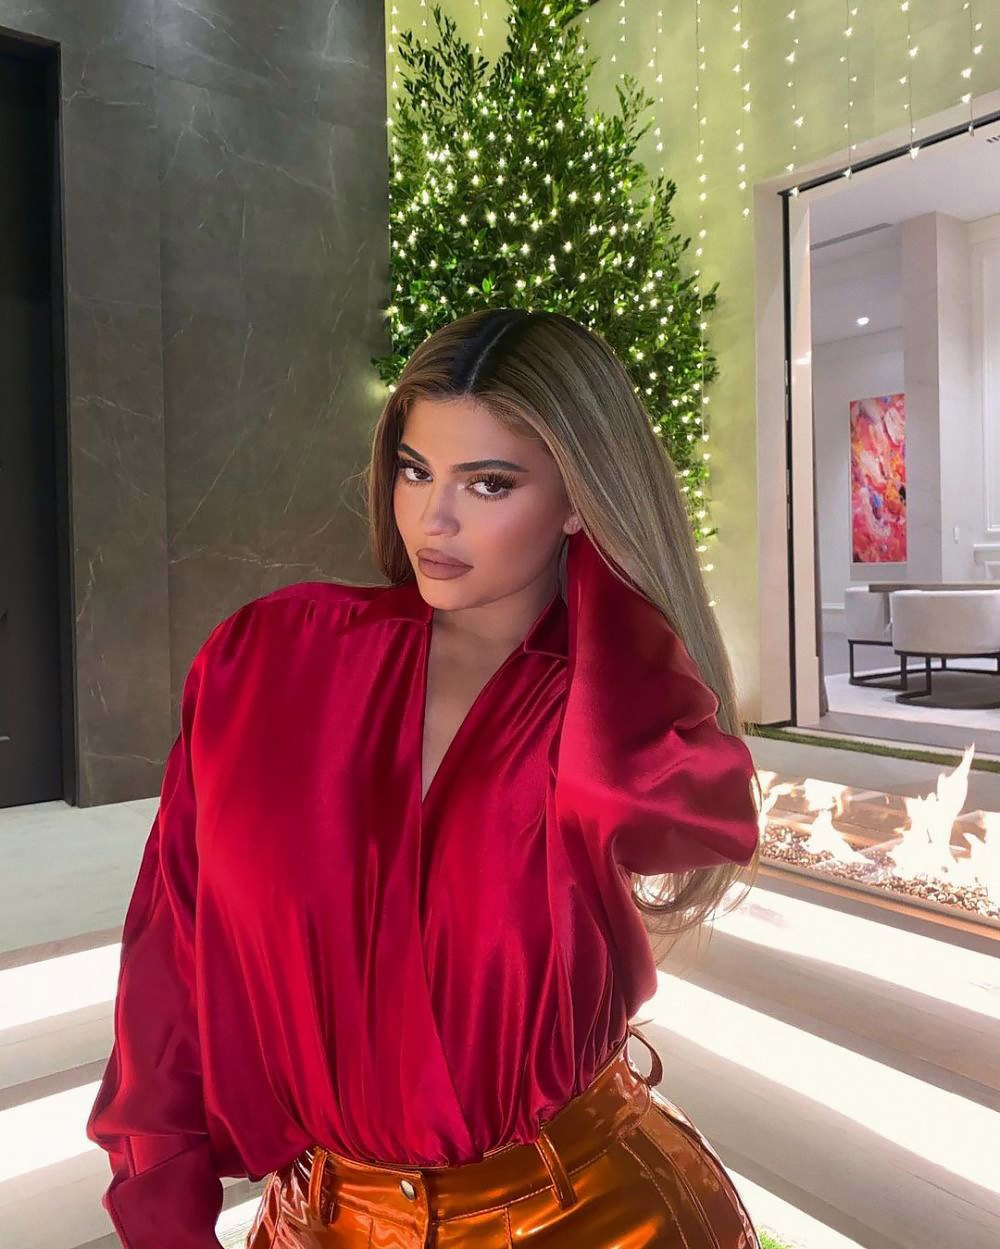 Kylie Jenner Shows Off Her Towering 2020 Christmas Tree